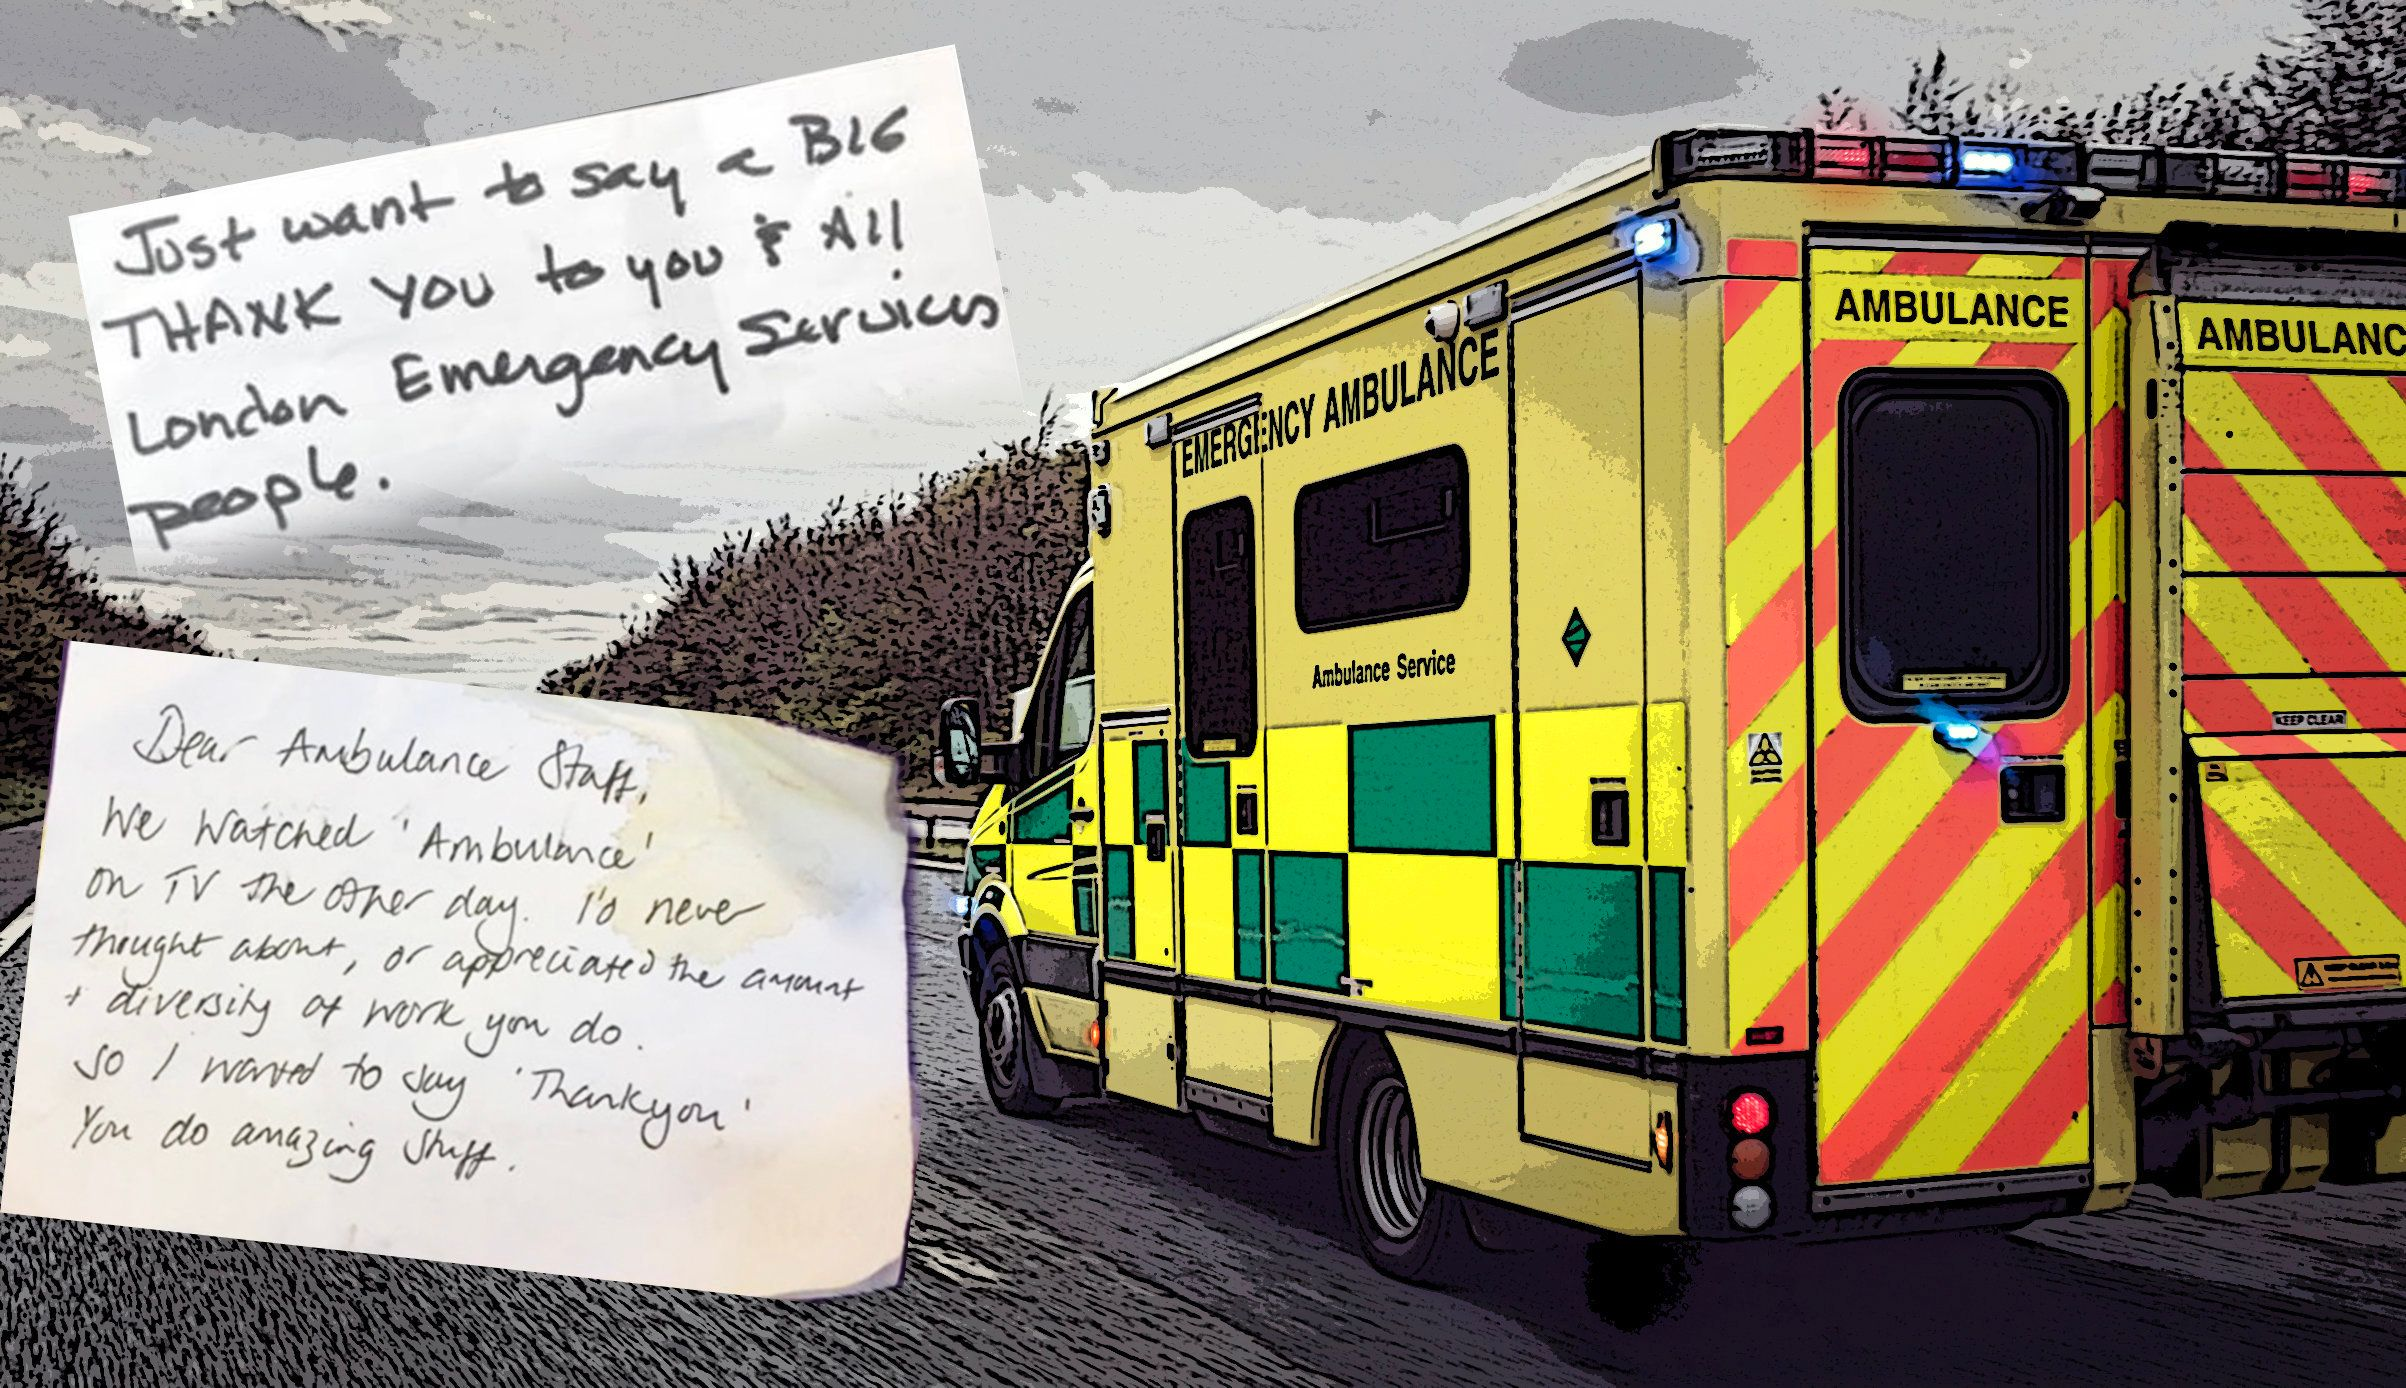 Notes received by London Ambulance